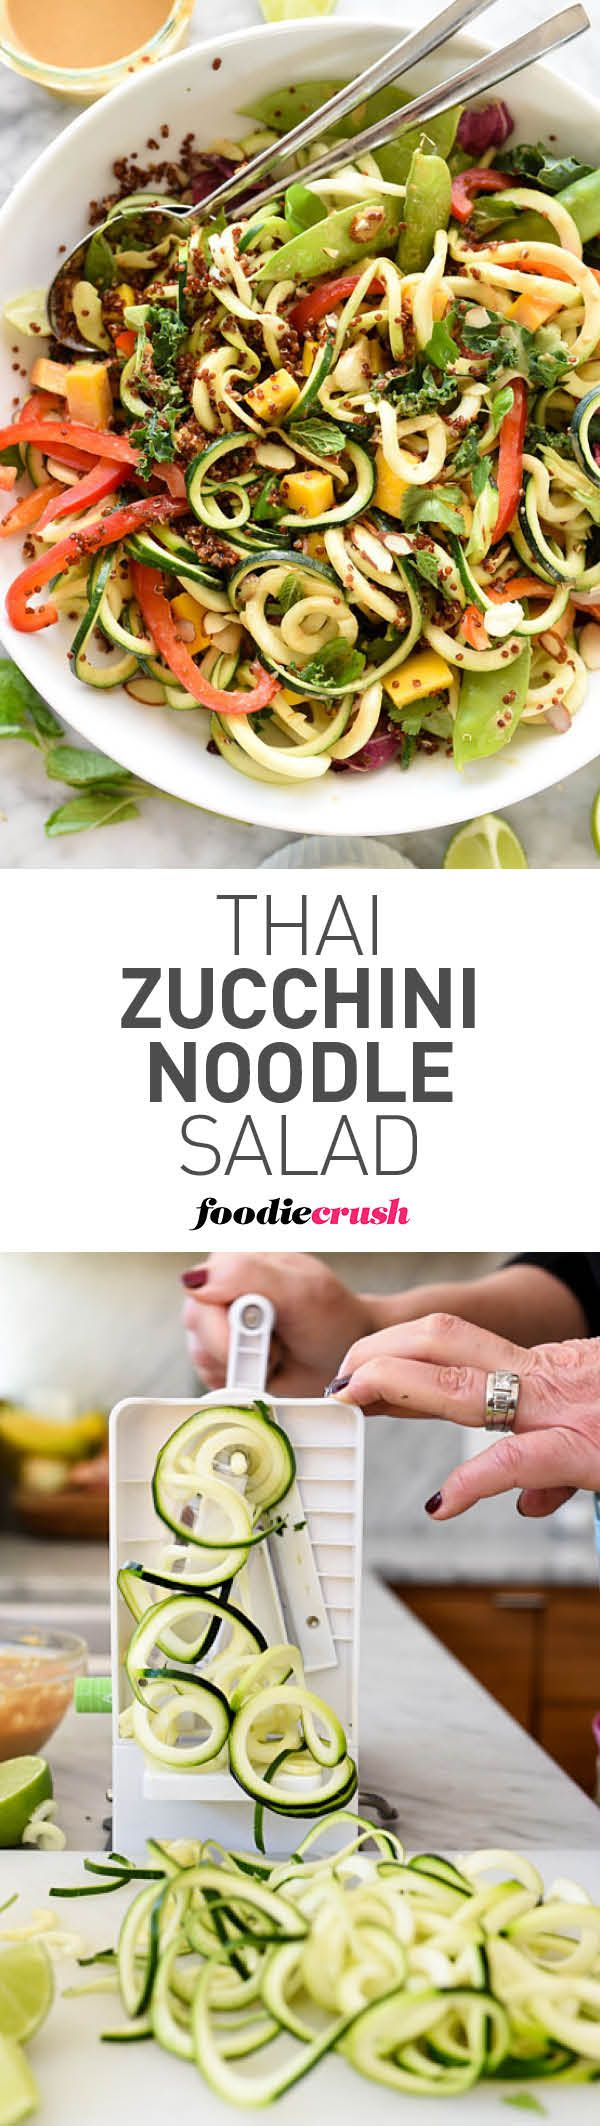 I'm obsessed with spiralized noodles. Zucchini is the base of this raw vegetable salad with a flavorful Thai peanut dressing that everyone loves   foodiecrush.com #healthy #salad #zoodles